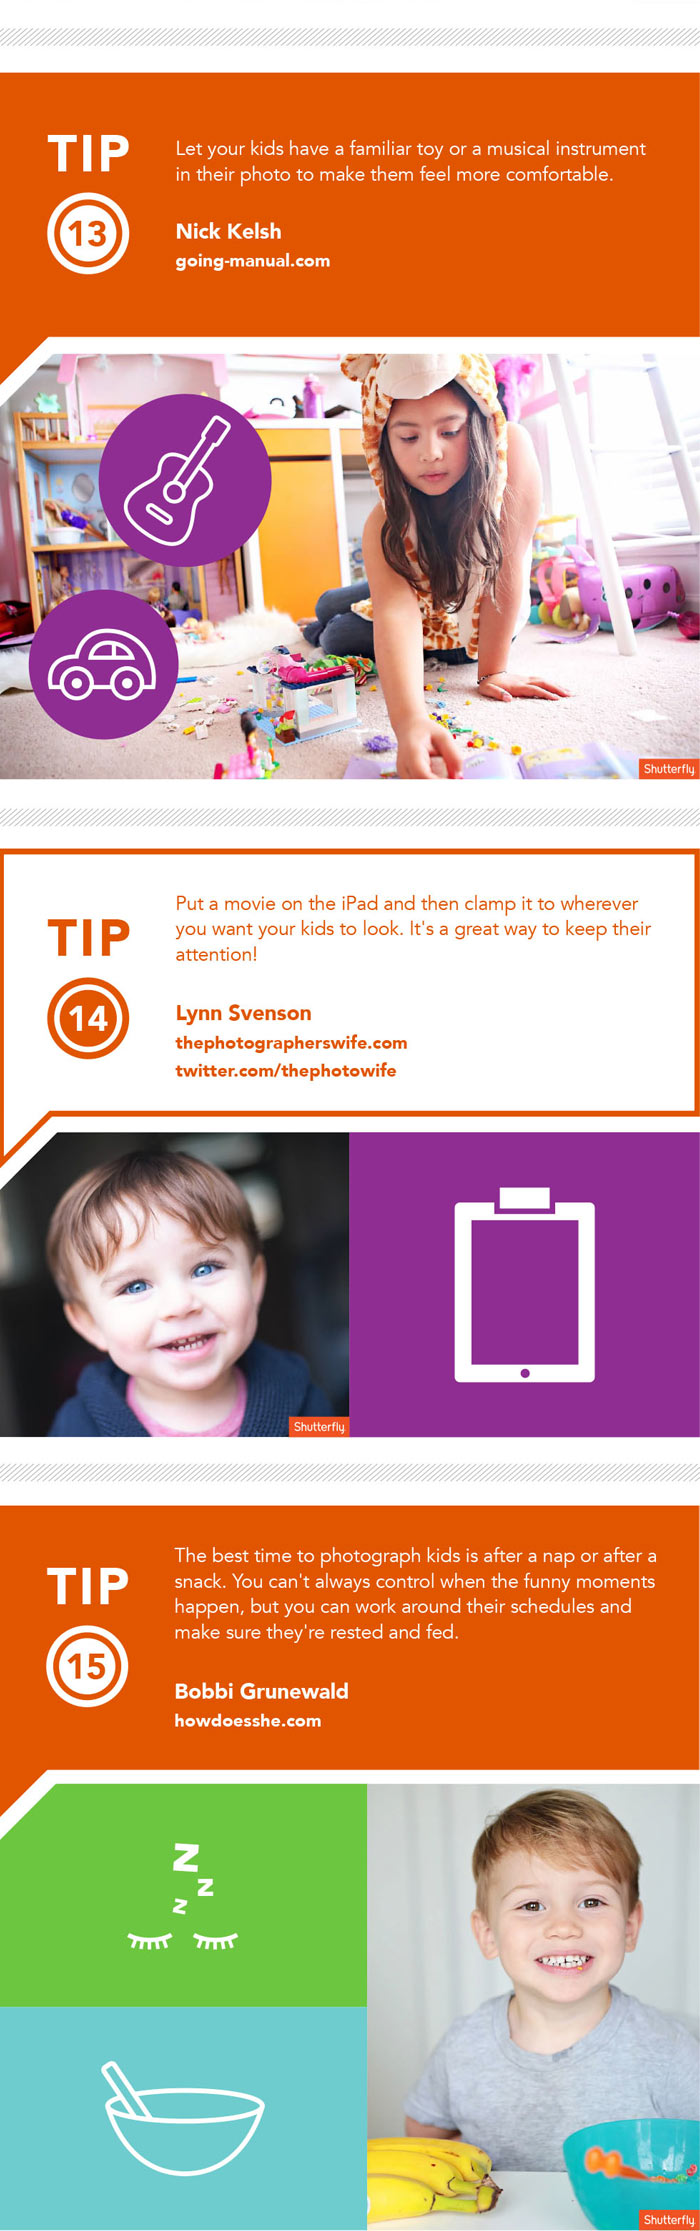 The Shutterfly Guide to Taking Photos of Wiggly Kids